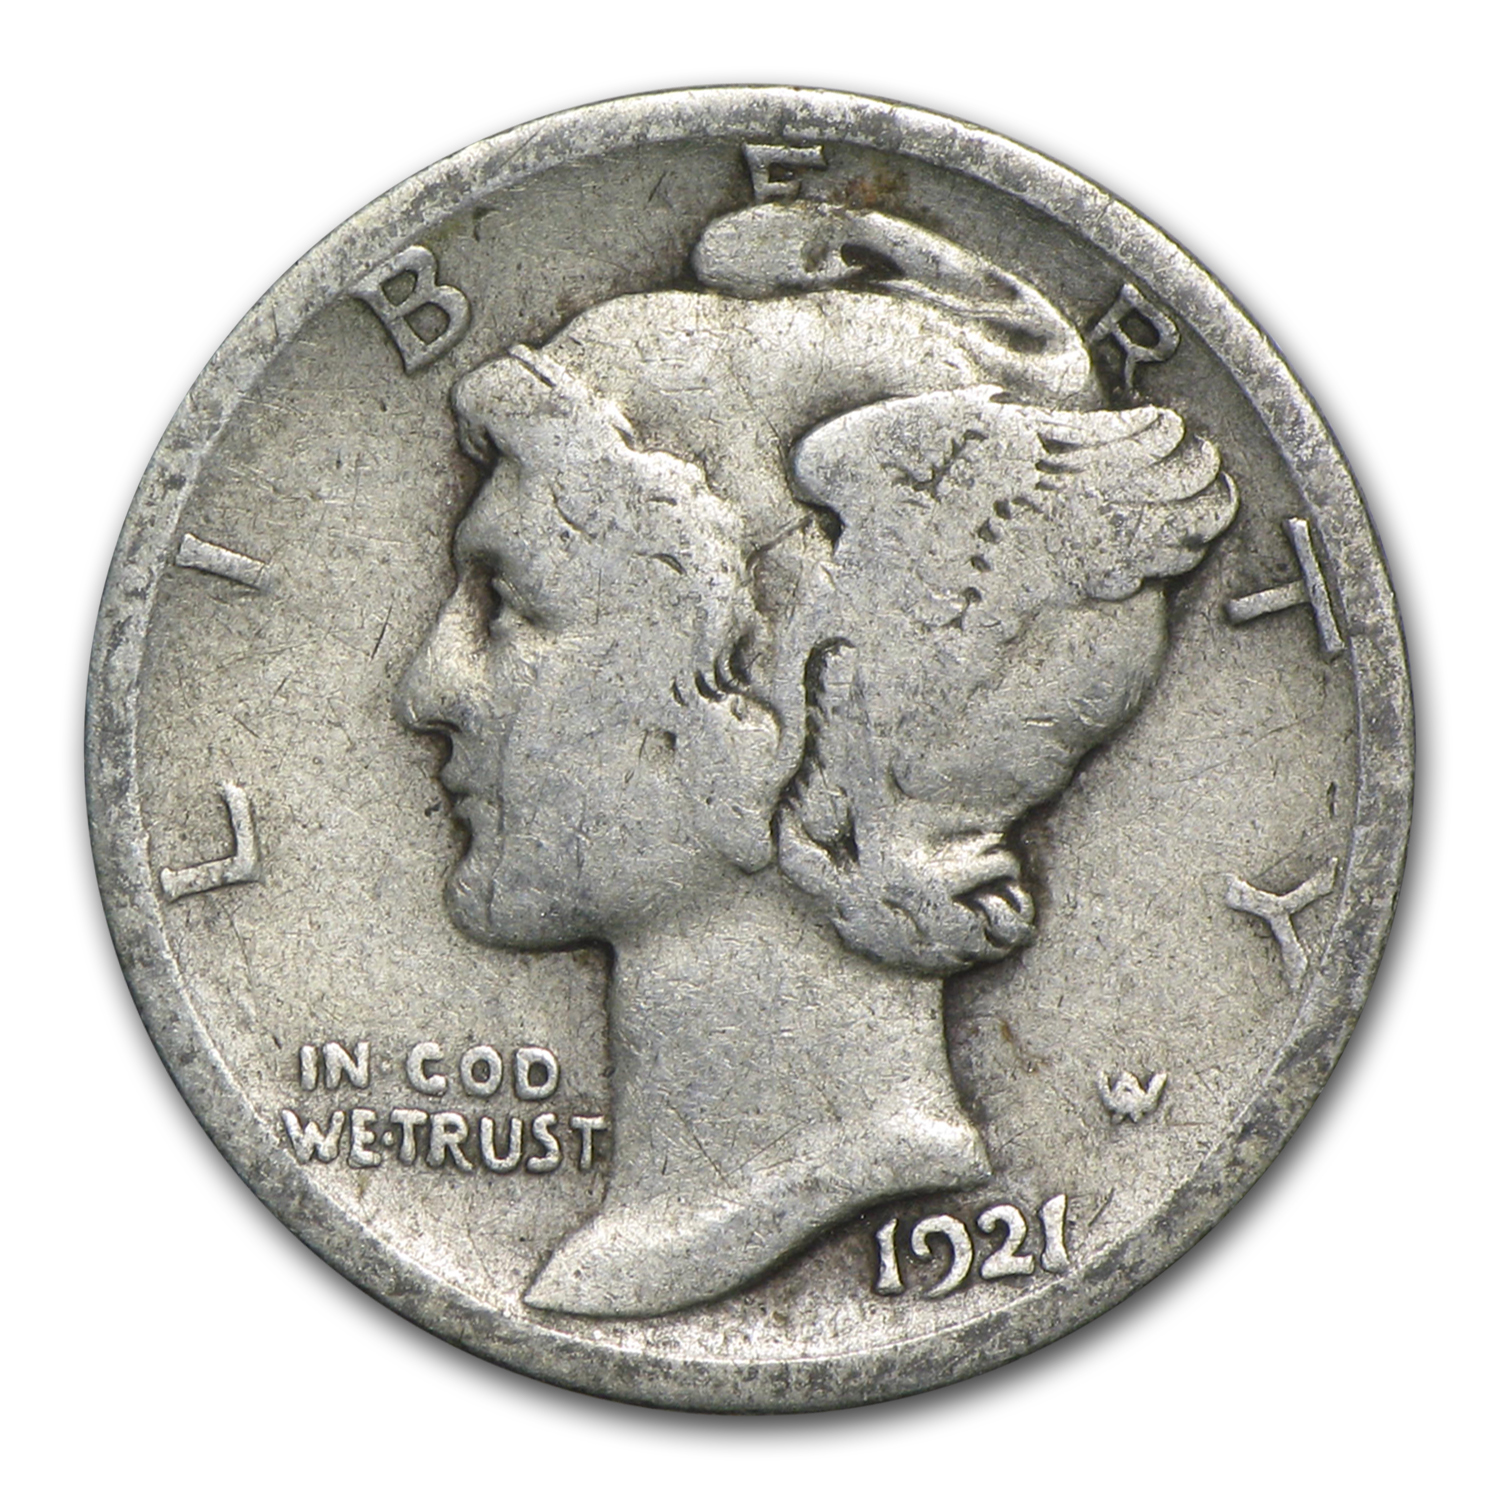 1921-D Mercury Dime - Very Good